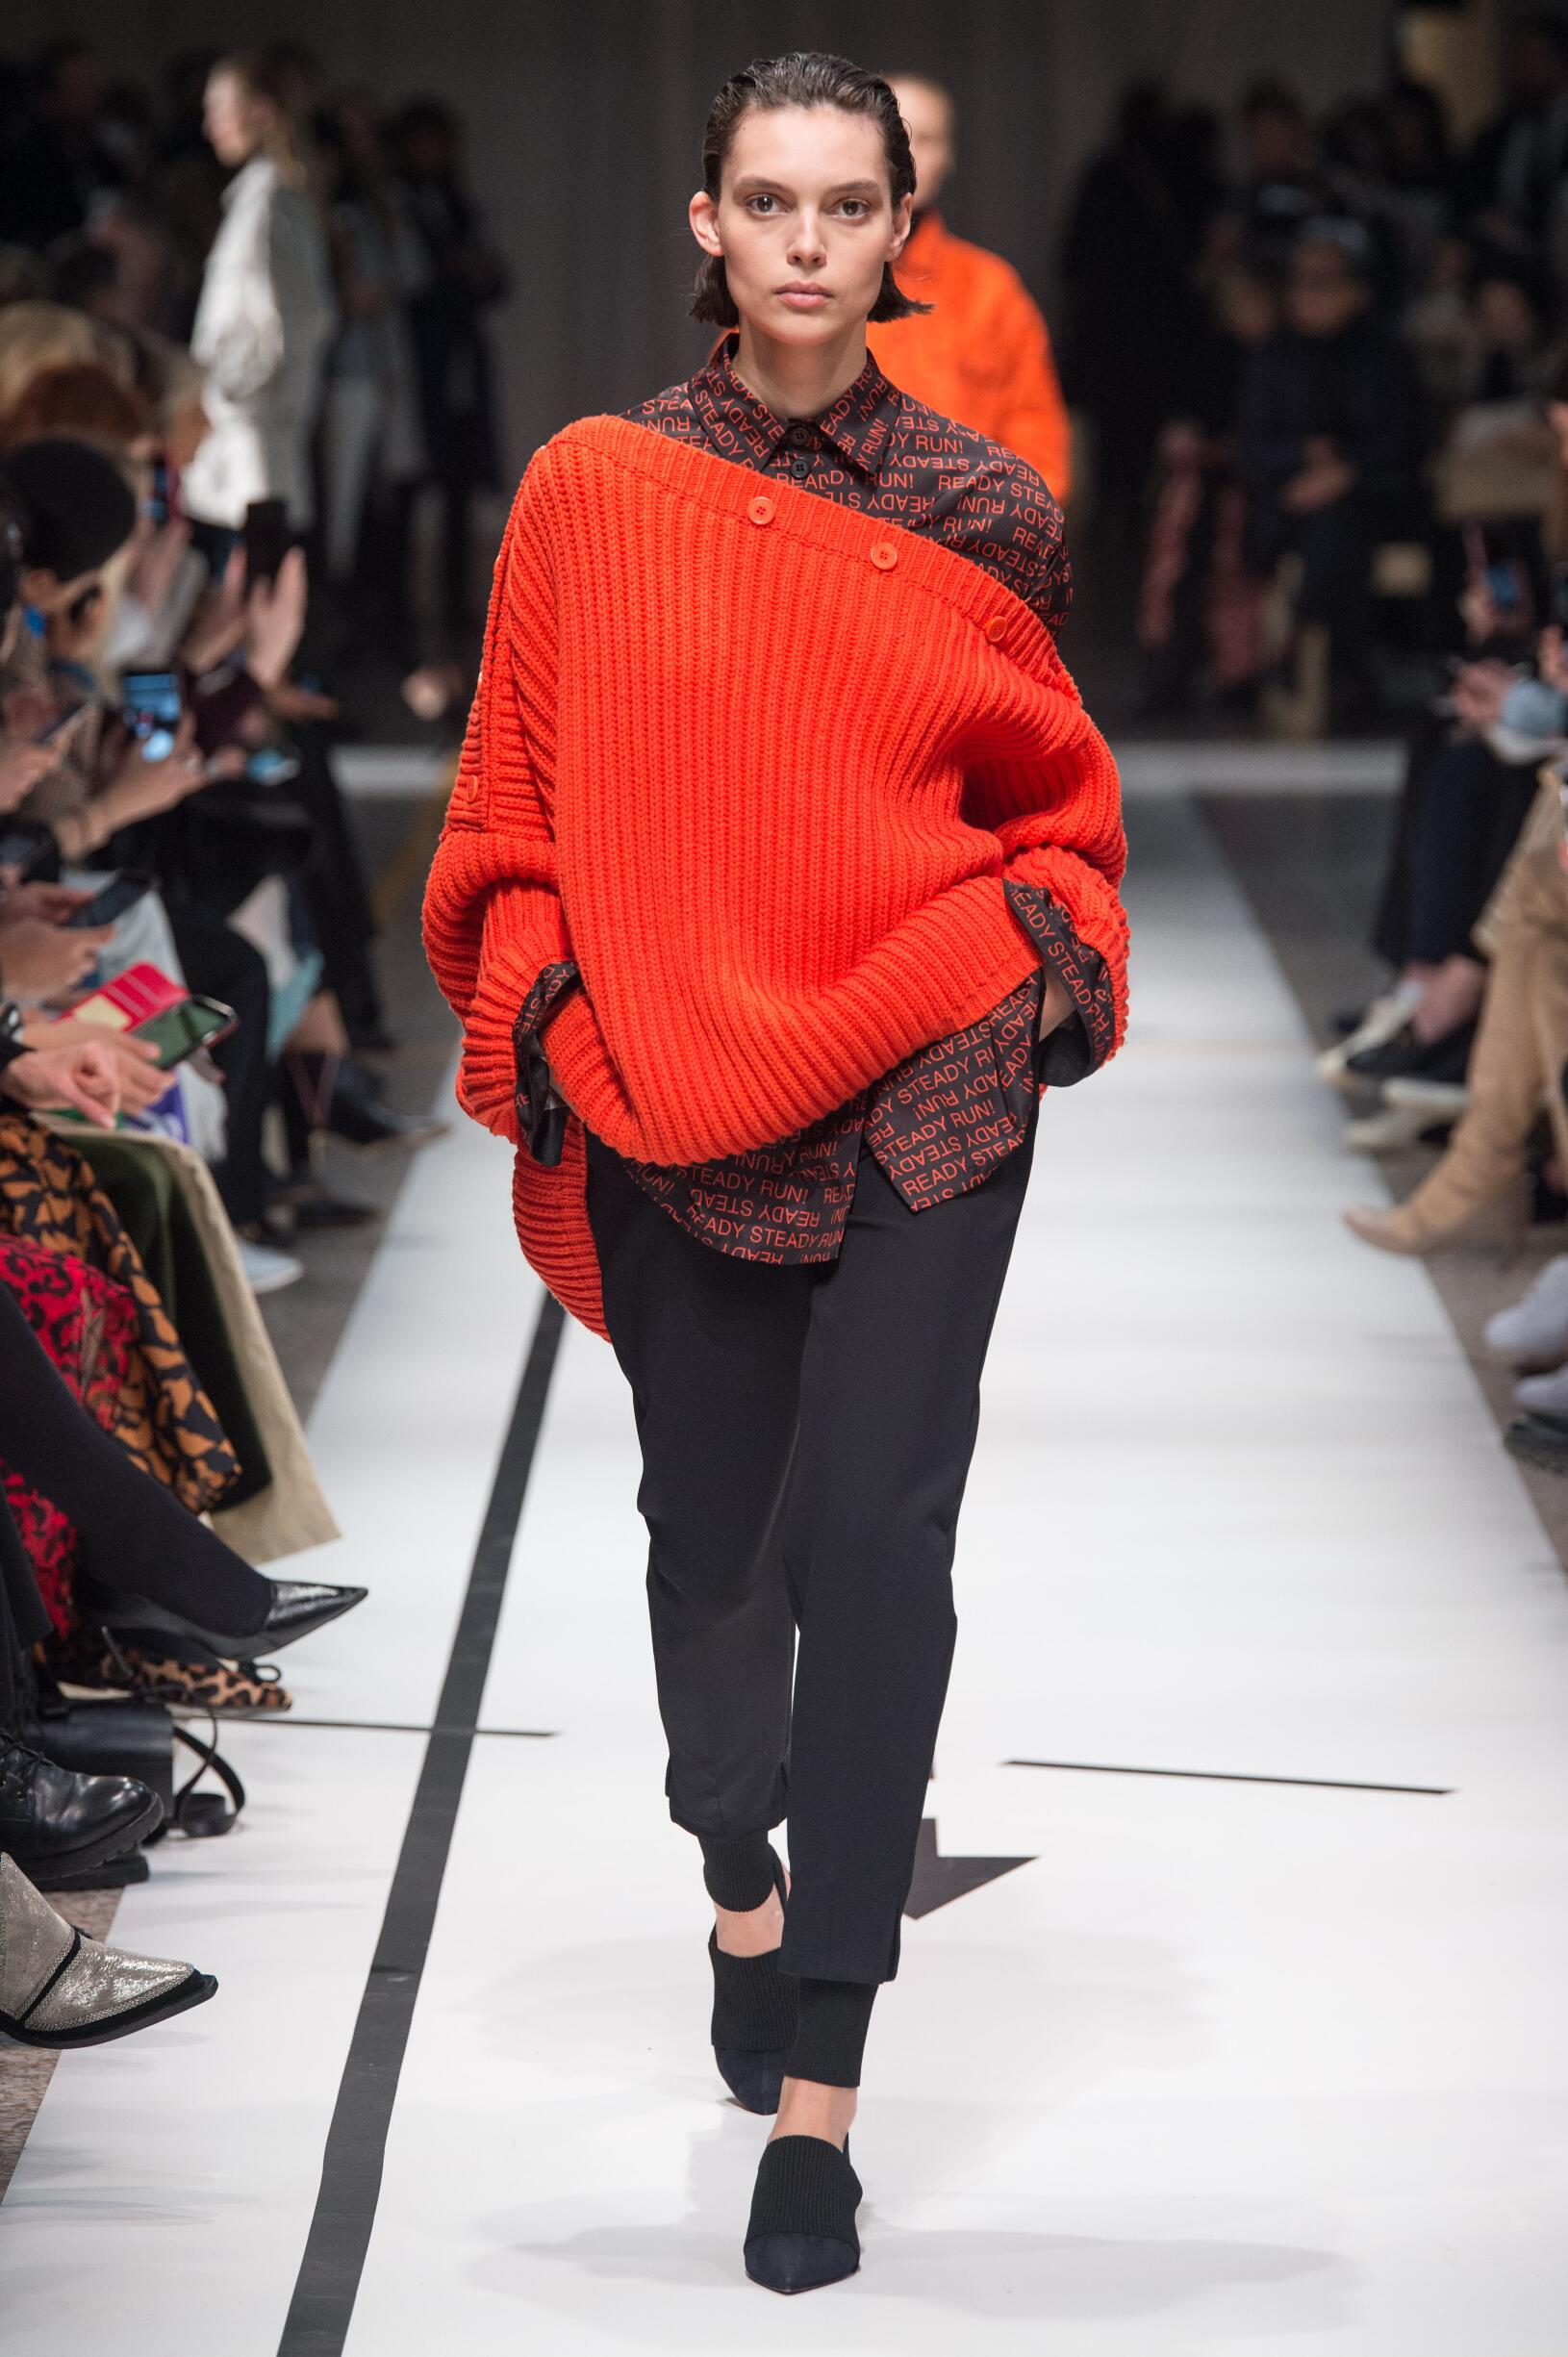 Sportmax Woman Catwalk